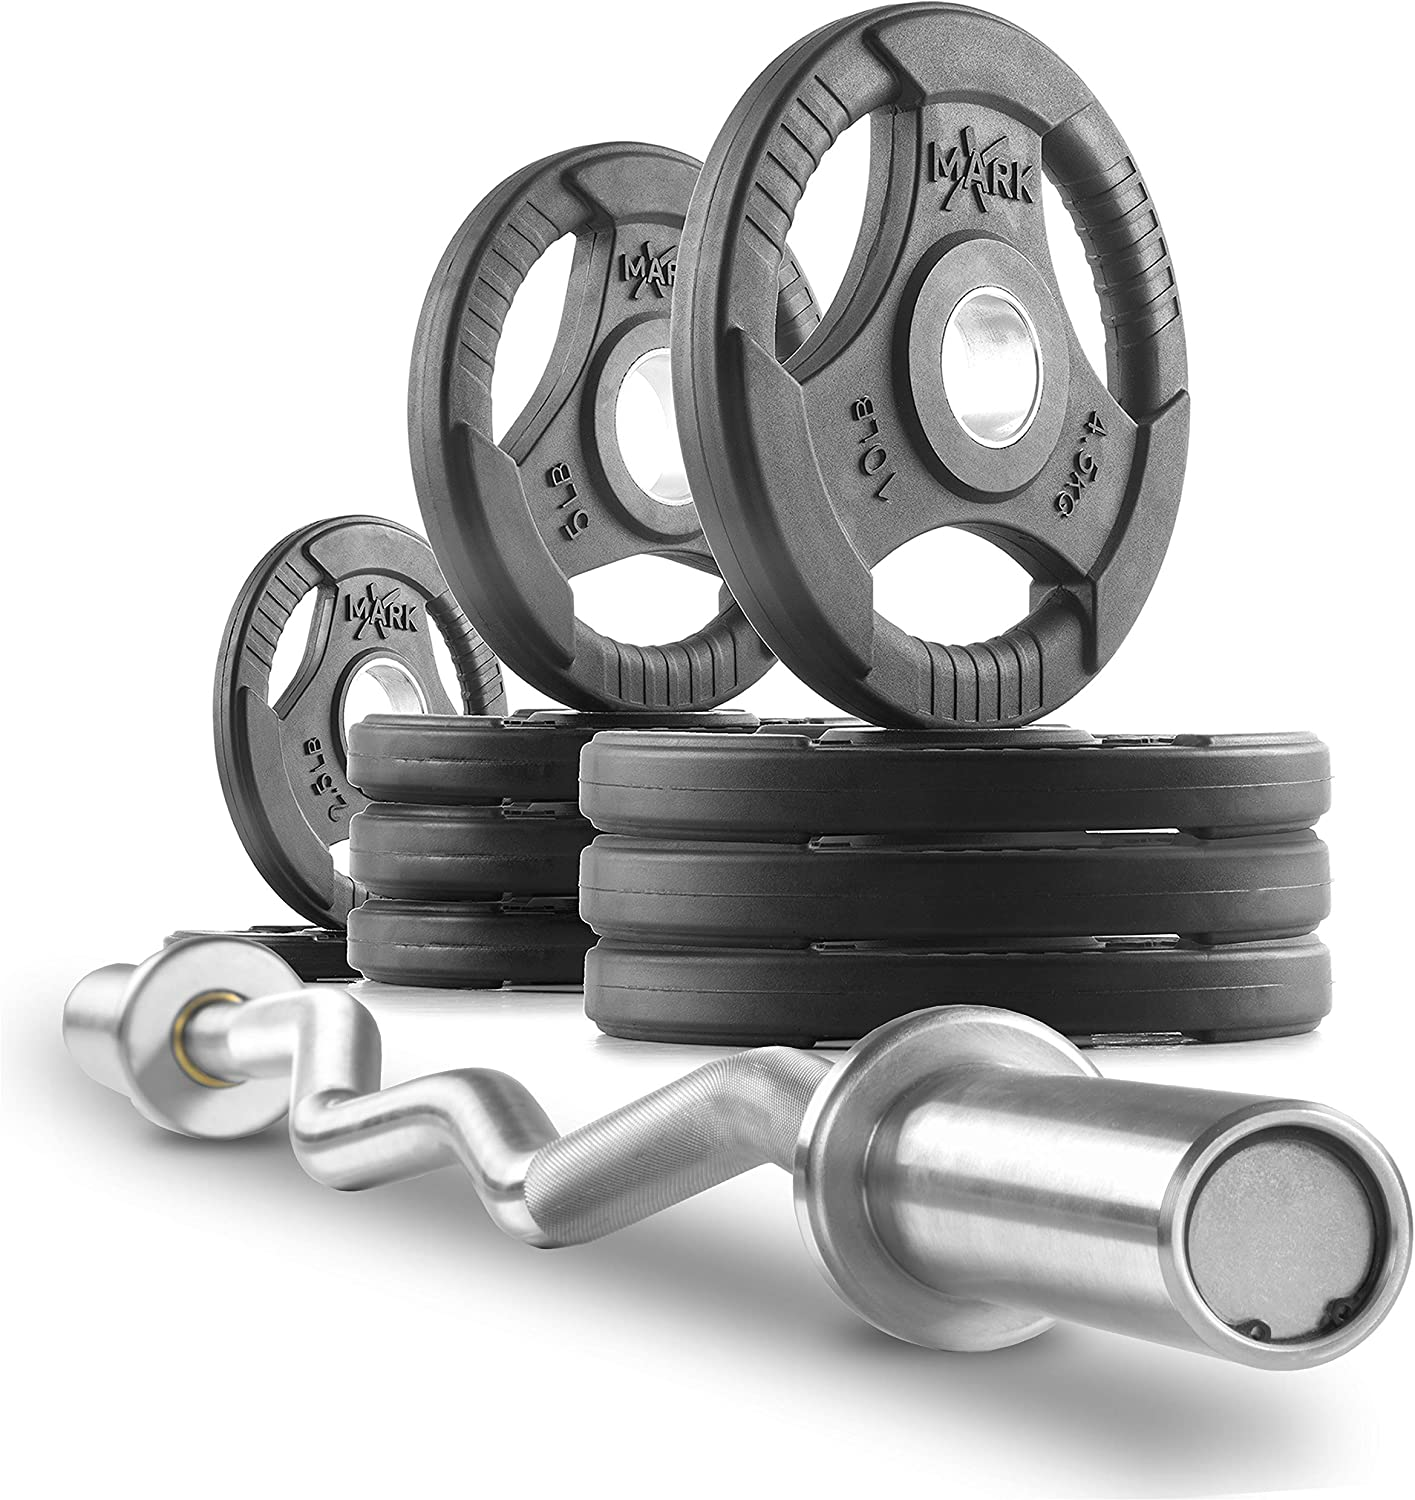 XMark XM-3677 Commercial Hard Chrome Olympic EZ Curl Bar Brass Bushings with Optional Texas Star, Signature or TRI-Grip Olympic Plate Weight Sets, Great for Bicep Curl and Triceps Extension